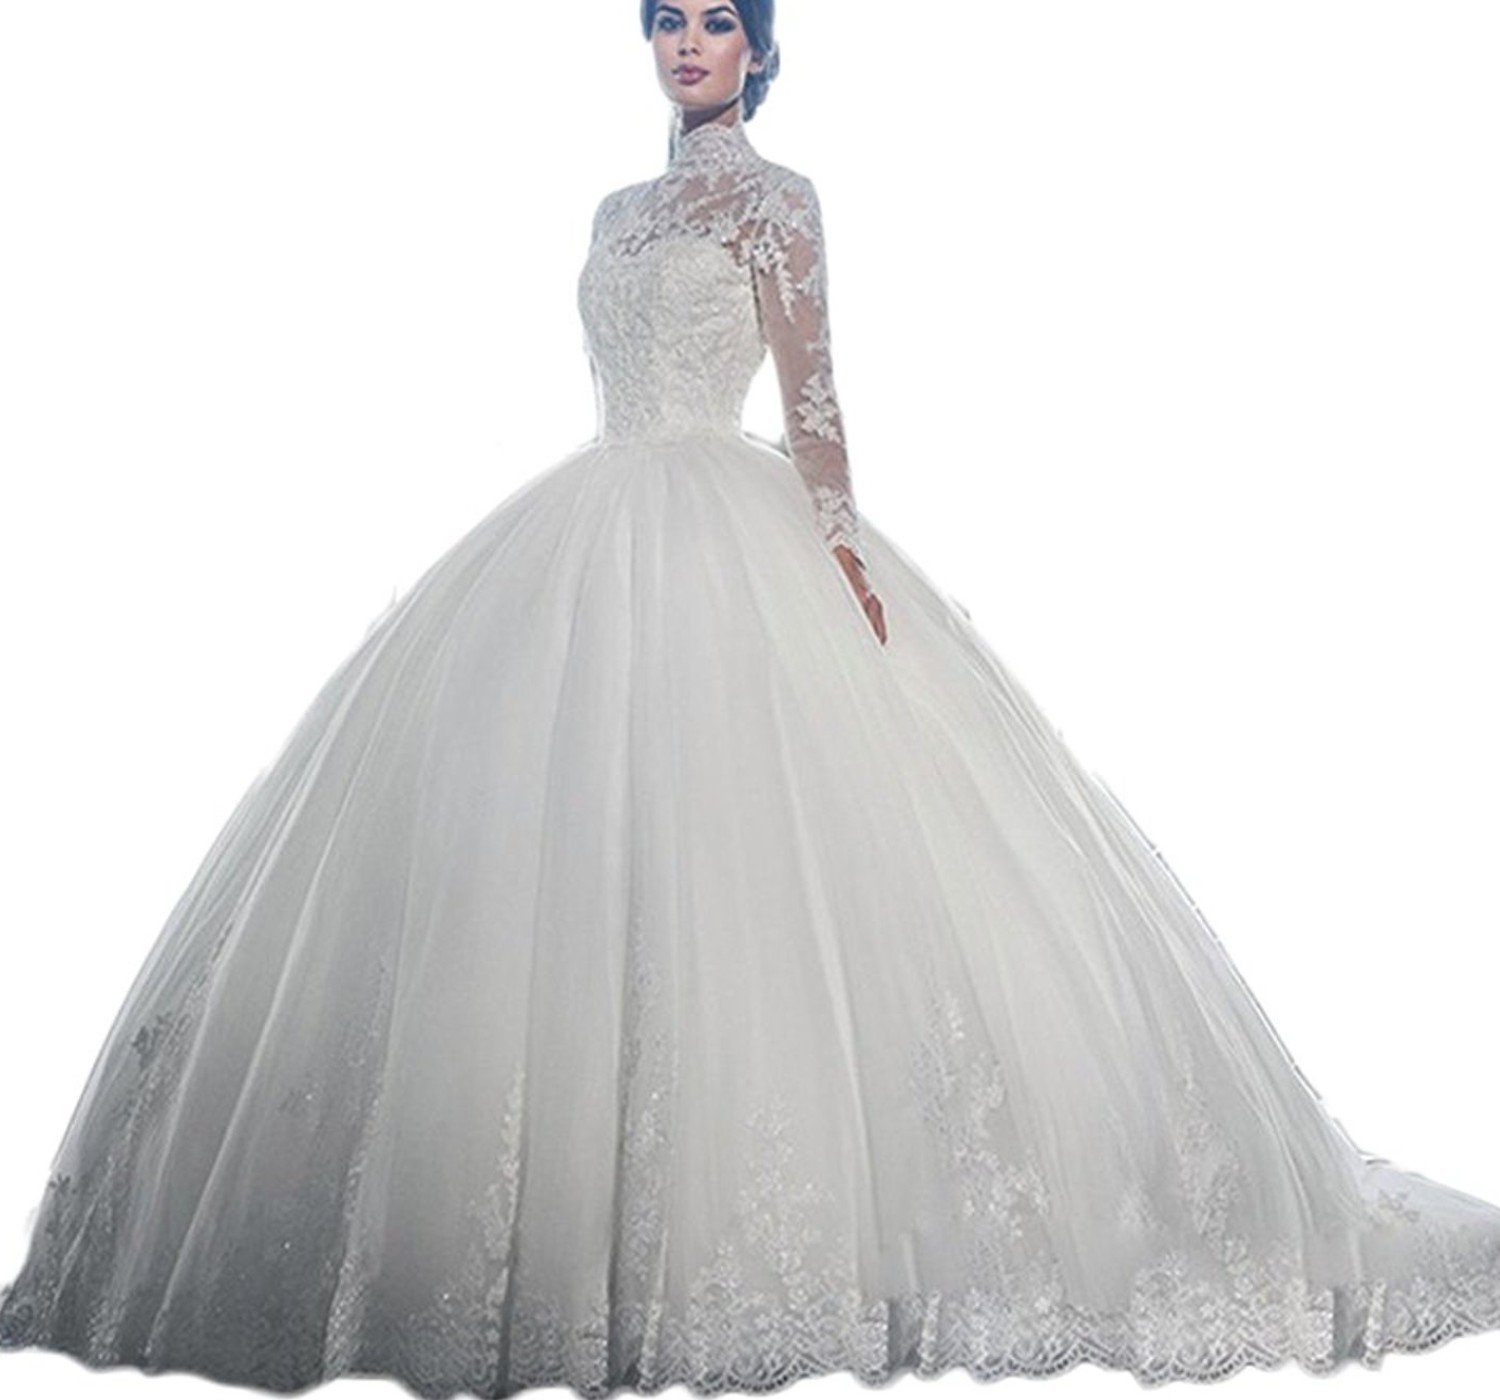 Diandiai Women's Lace Long Sleeve Ball Gown Wedding Dress Hight Neck Size Plus Wedding Dress For Bride White 6